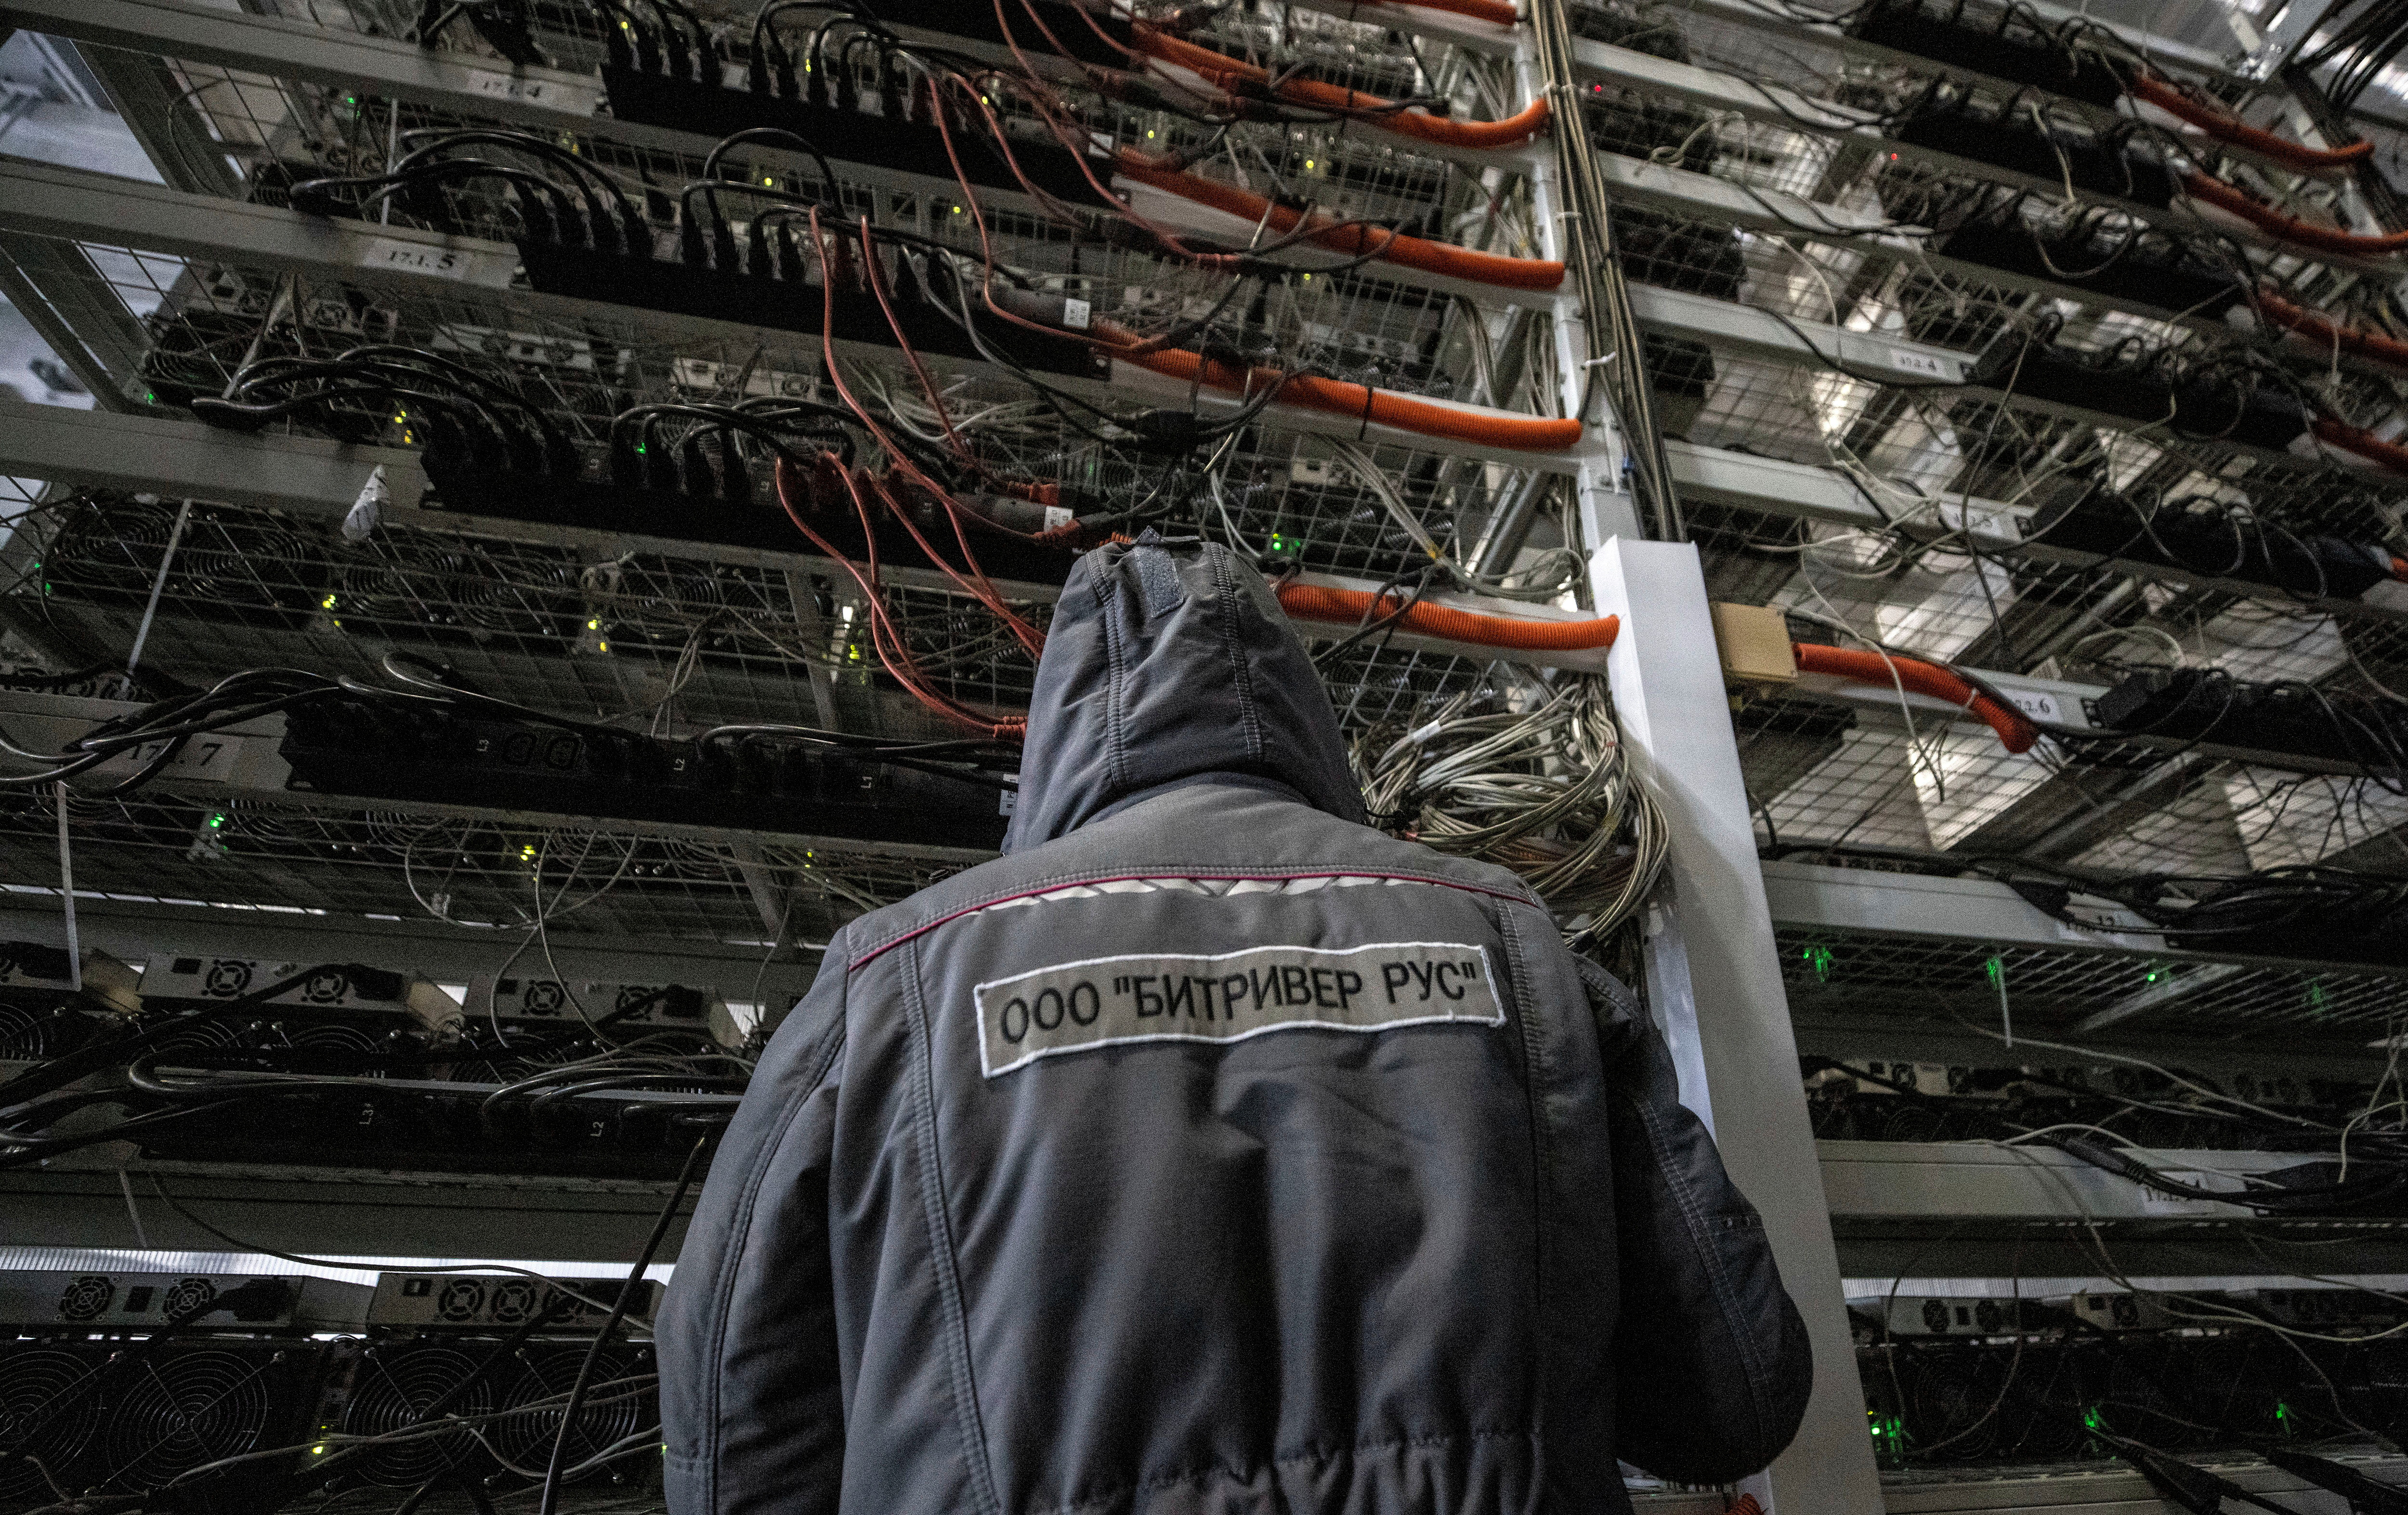 An employee works at the data centre of BitRiver company providing services for cryptocurrency mining in the city of Bratsk in Irkutsk Region, Russia March 2, 2021. BitRiver offers hosting services and turnkey solutions for cryptocurrency mining operations to institutional investors including bitcoin mining firms. Picture taken March 2, 2021. REUTERS/Maxim Shemetov/File Photo